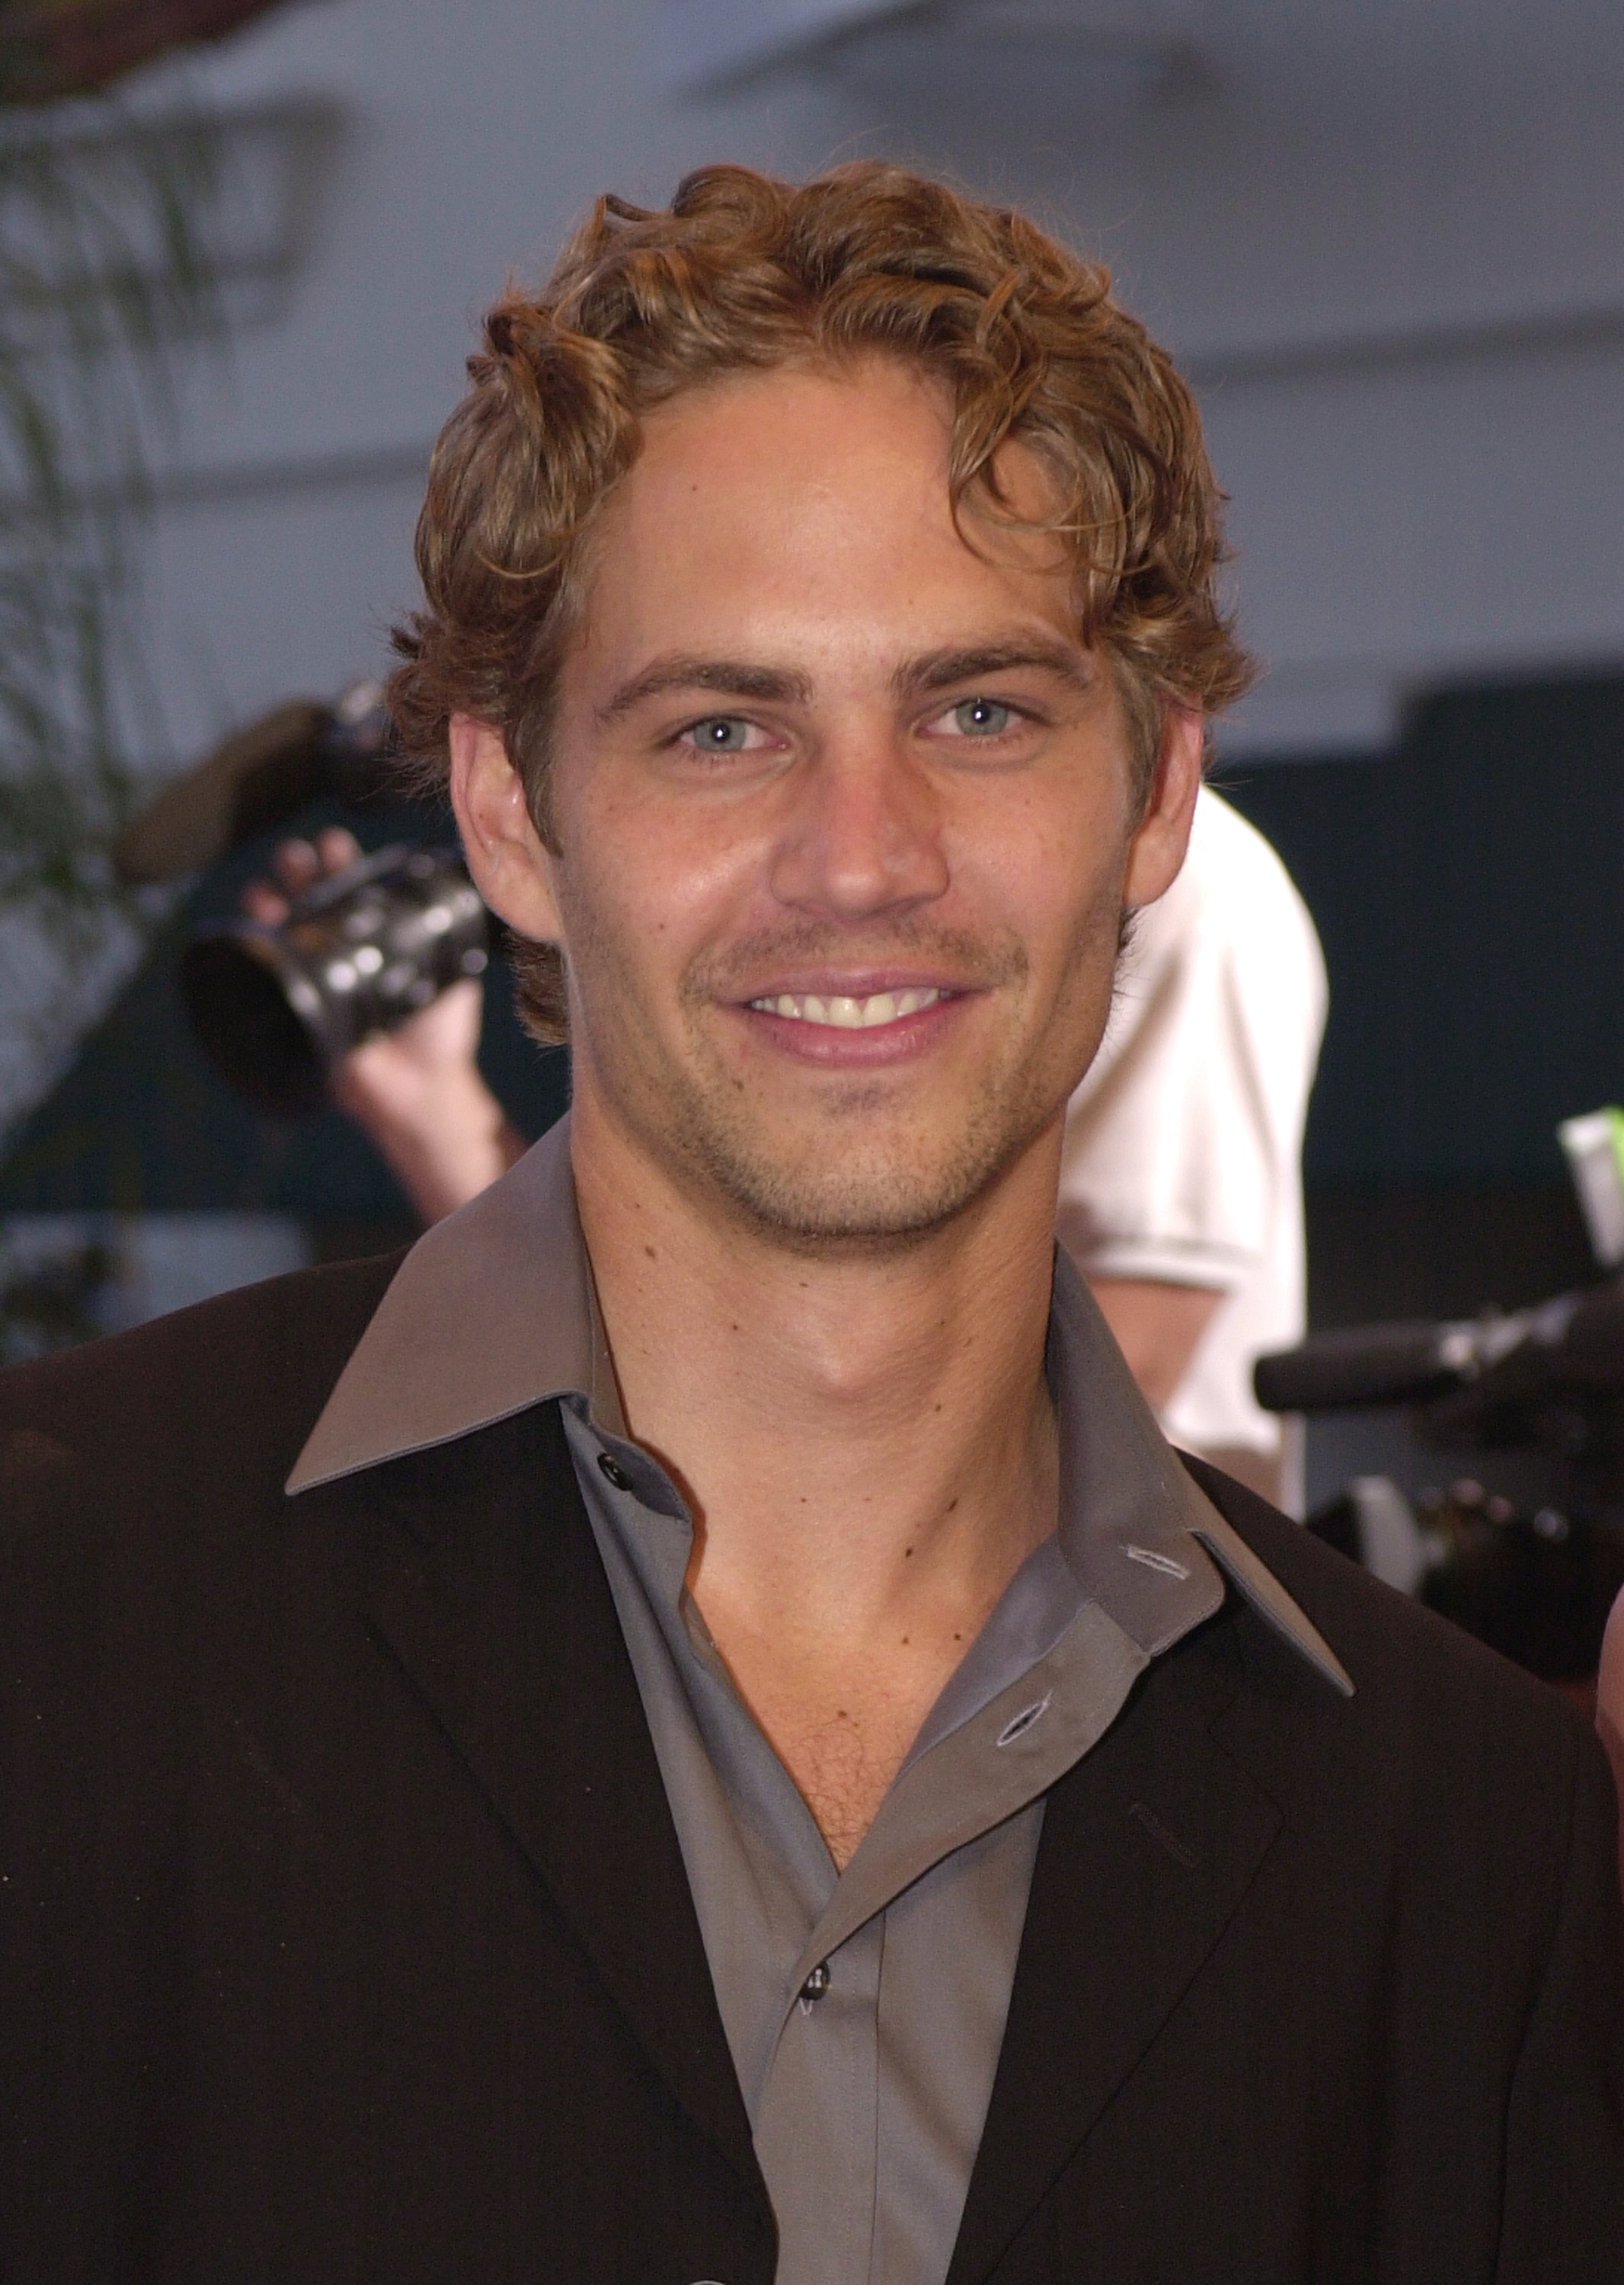 Remembering Paul Walker On Anniversary Of His Death